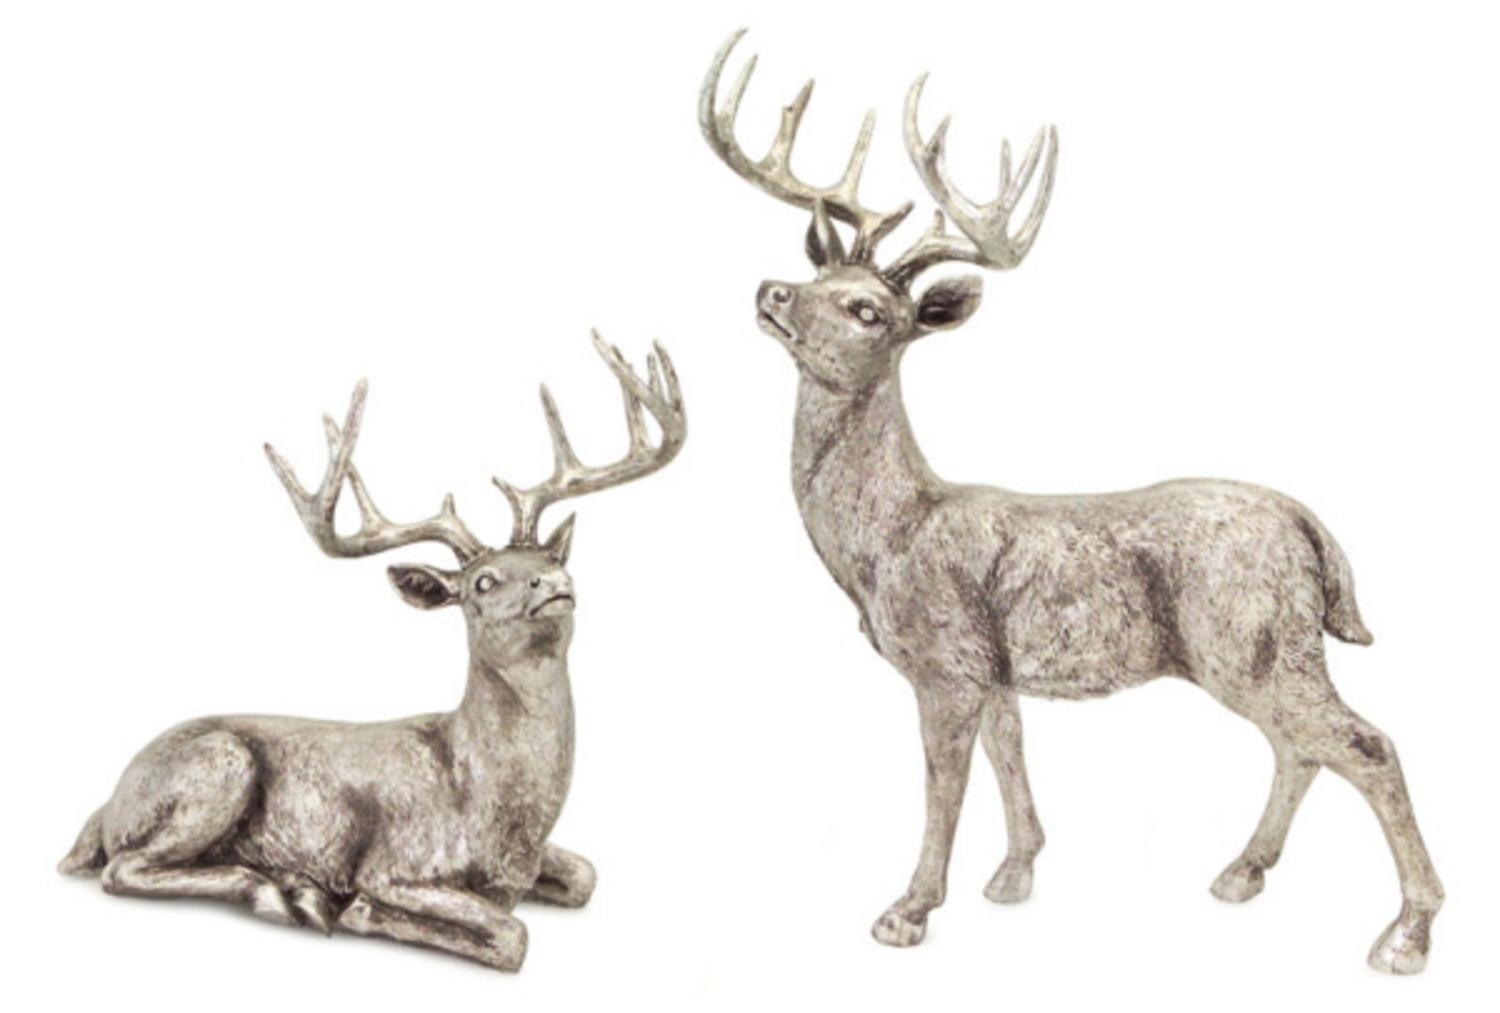 Decorative Distressed Finish Sitting & Standing Reindeer Pair Figurines | ChristmasTablescapeDecor.com #christmas tablescape